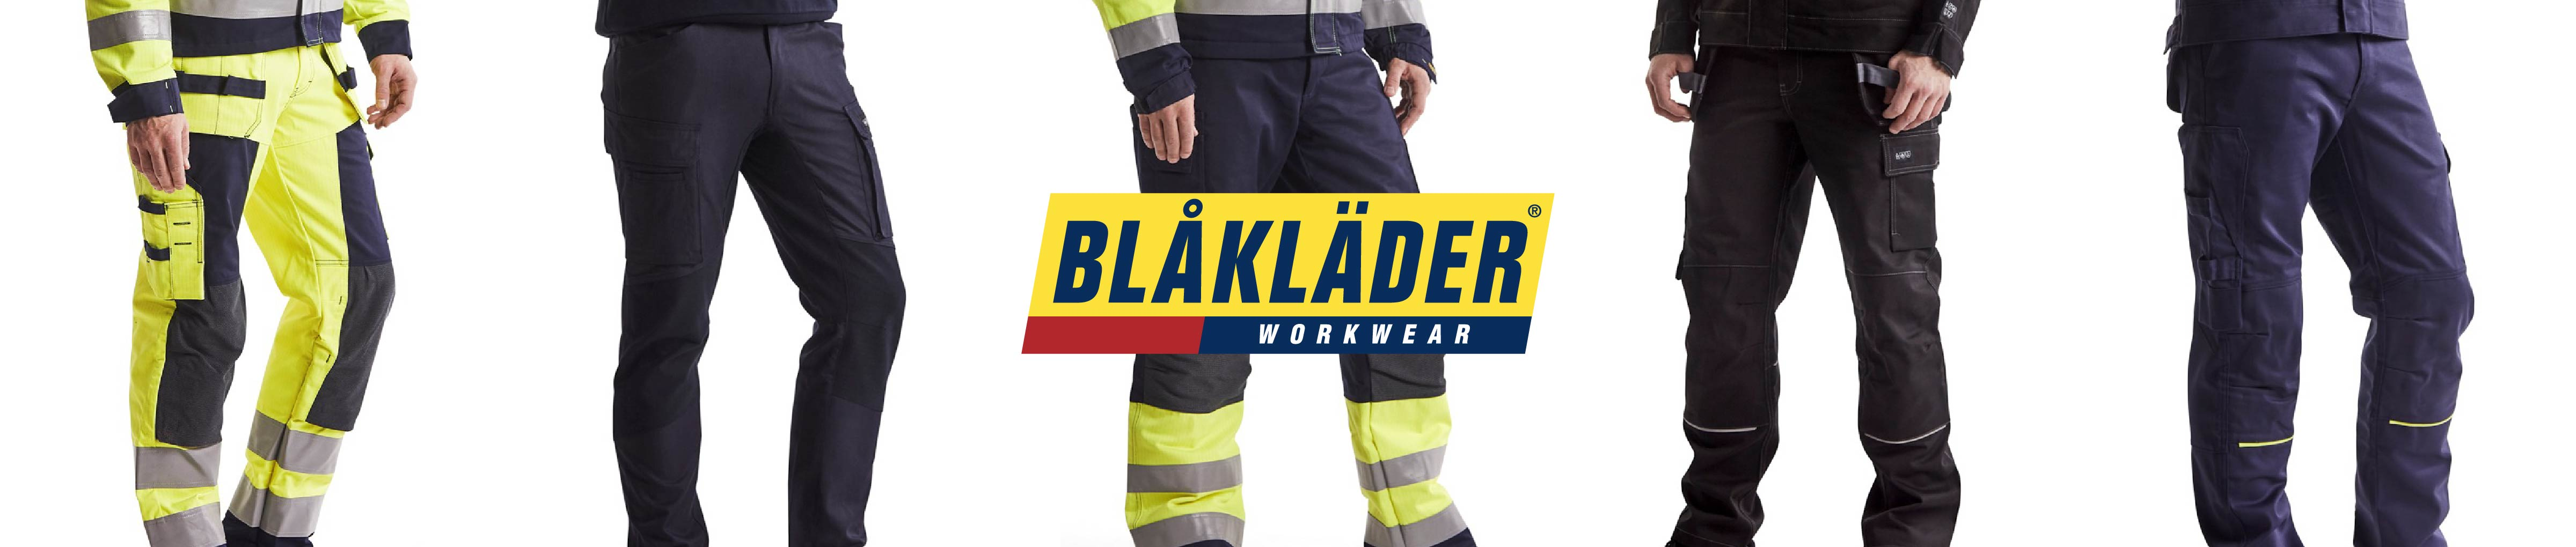 Flame retardant work trousers